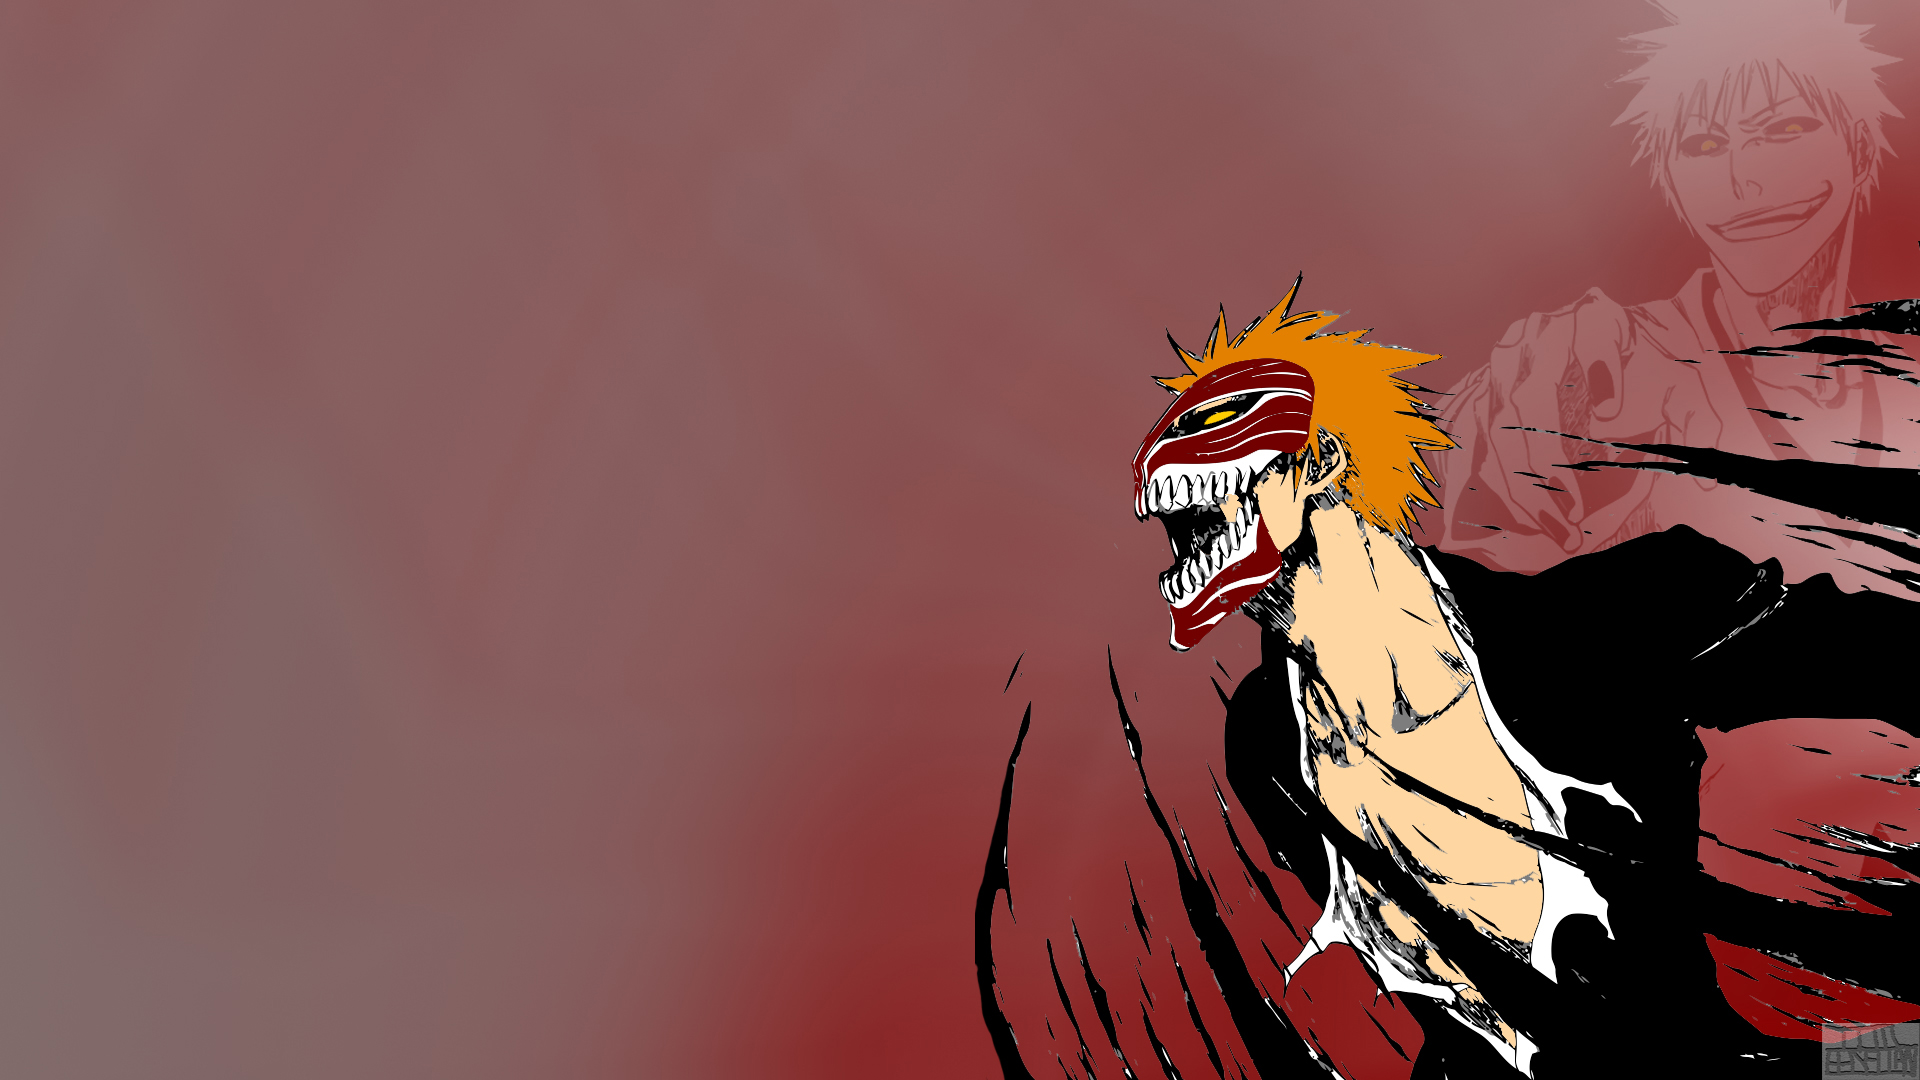 imagenes de bleach en HD